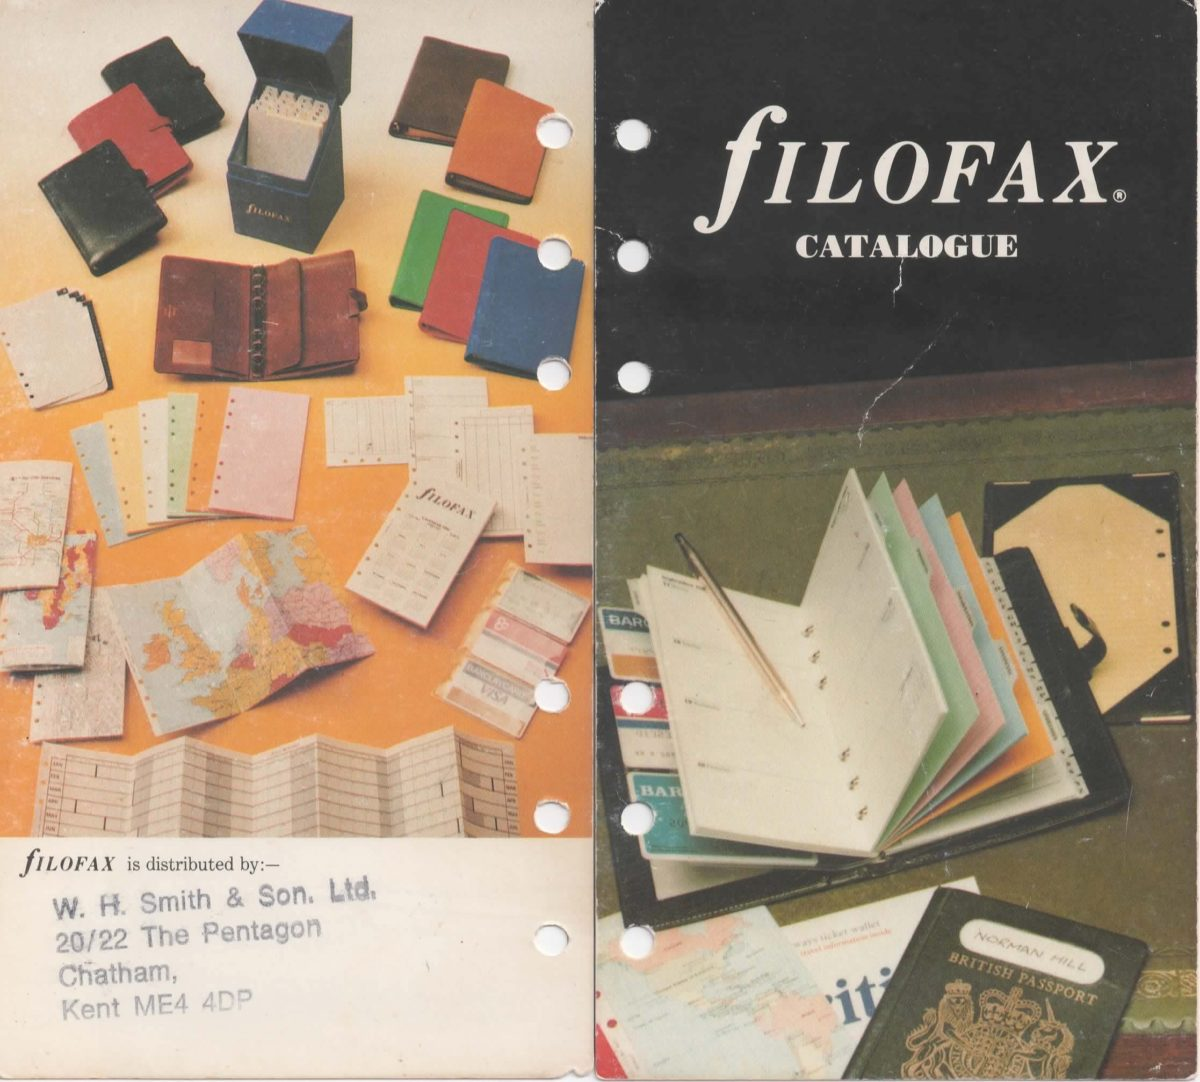 Filofax Full catalogue 1984